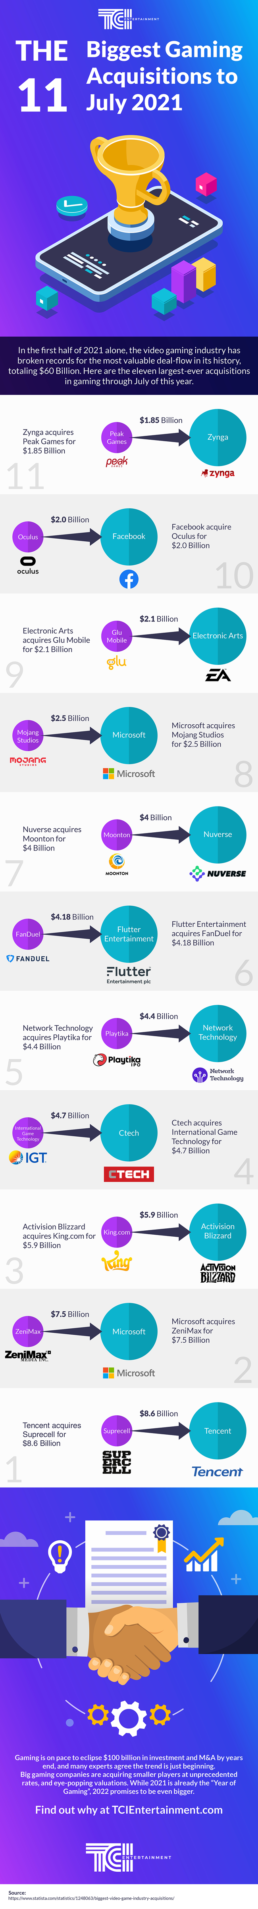 THE 11 BIGGEST GAMING ACQUISITIONS TO JULY 2021